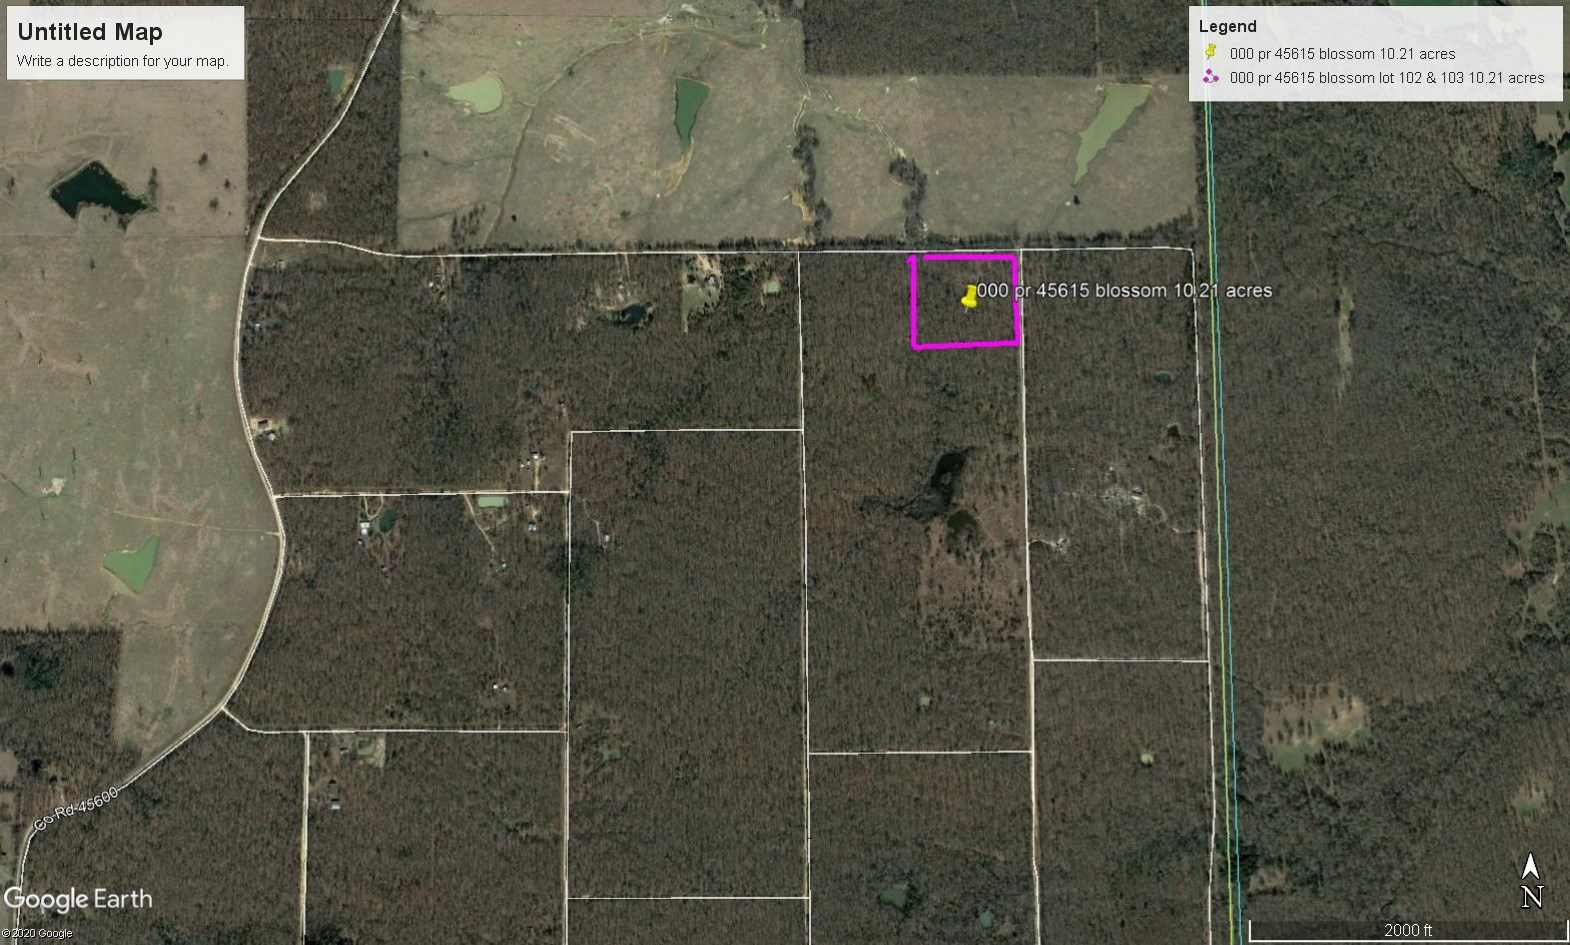 Recreational Land For Sale In Blossom Texas